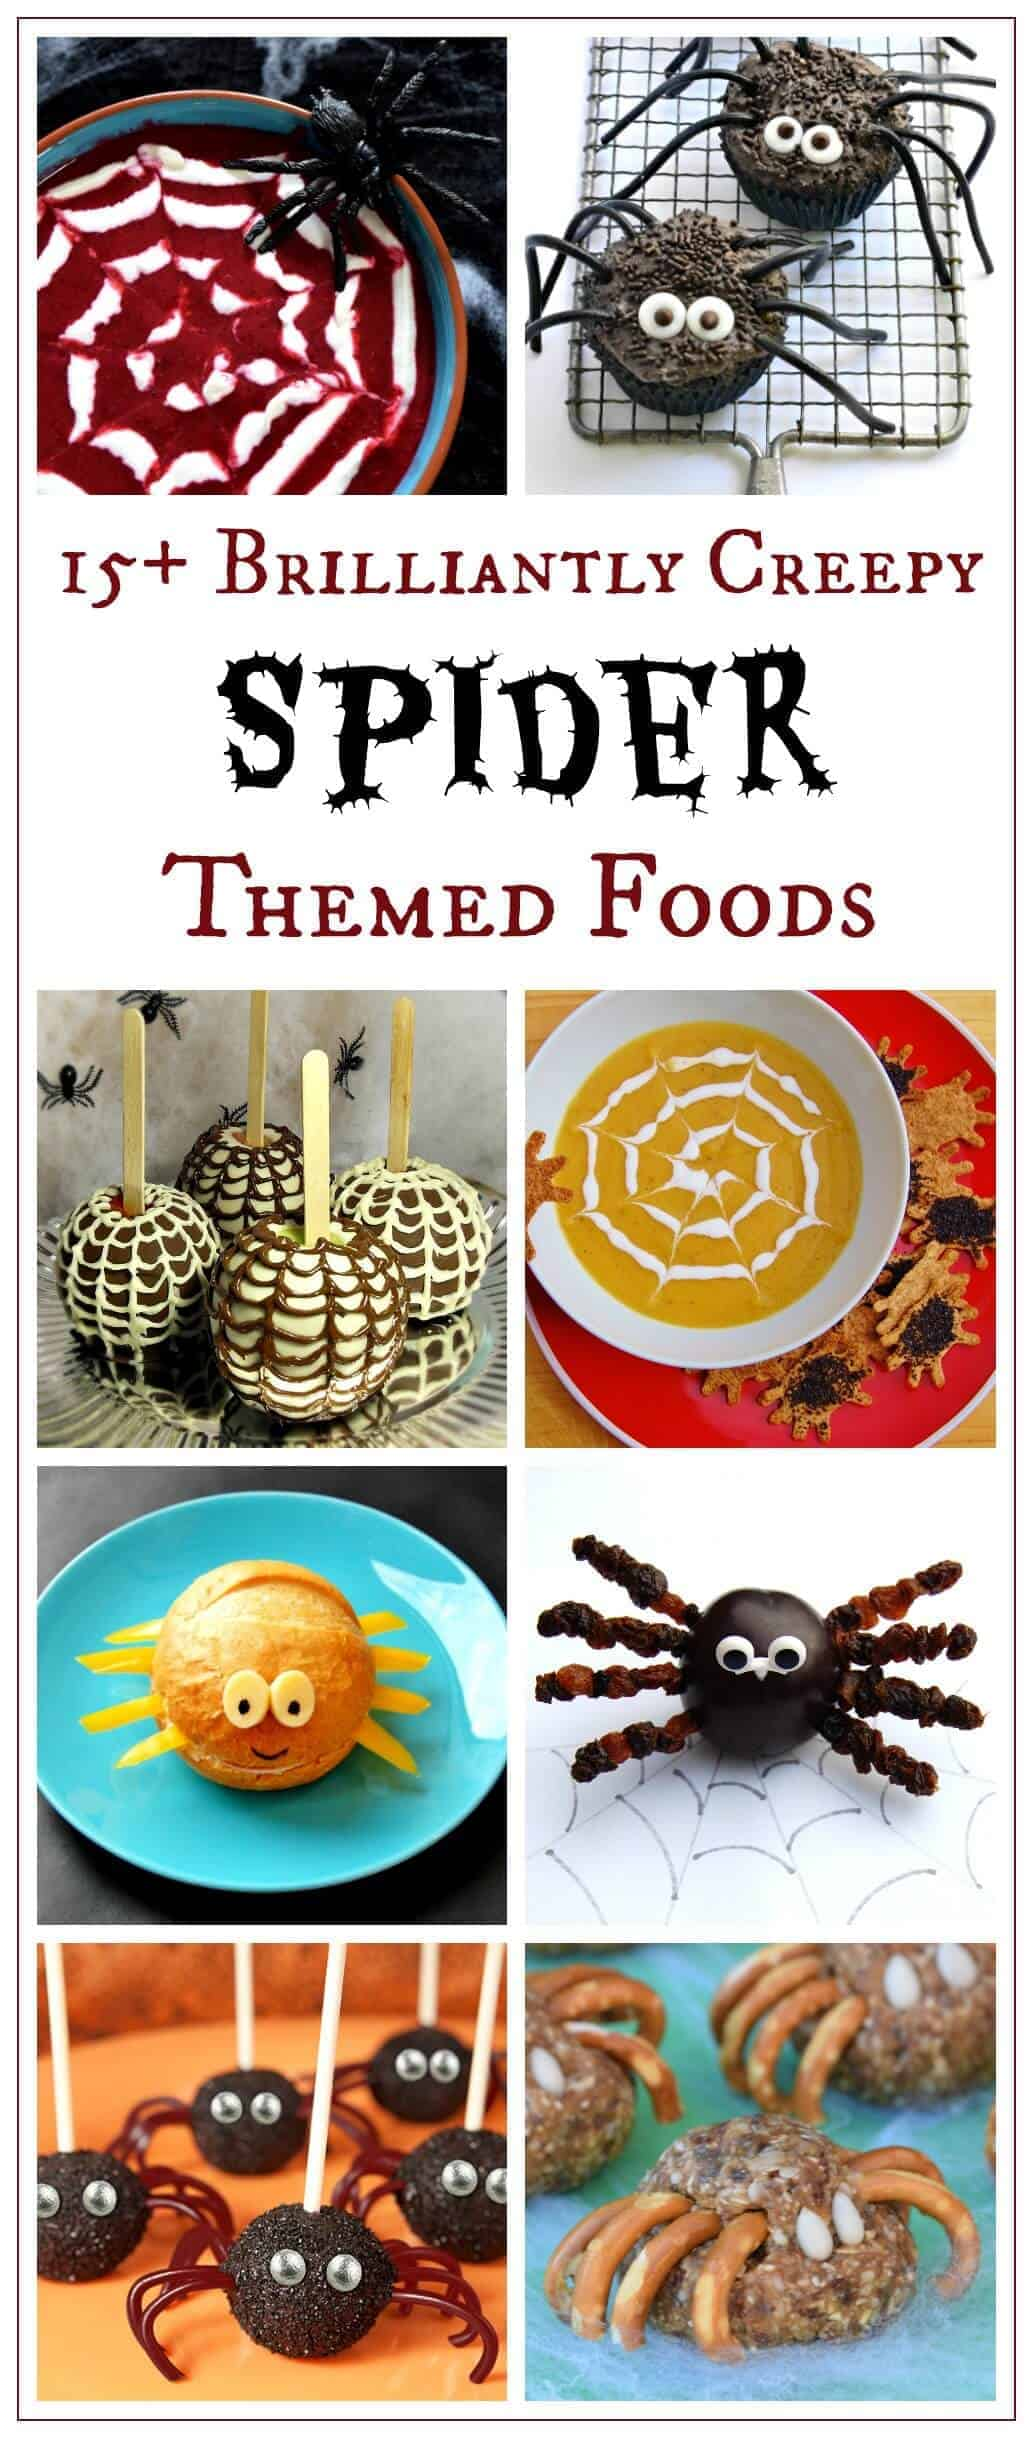 Over 15 Awesome Spider Themed Foods for Halloween - great for party food - fun food for kids from Eats Amazing UK